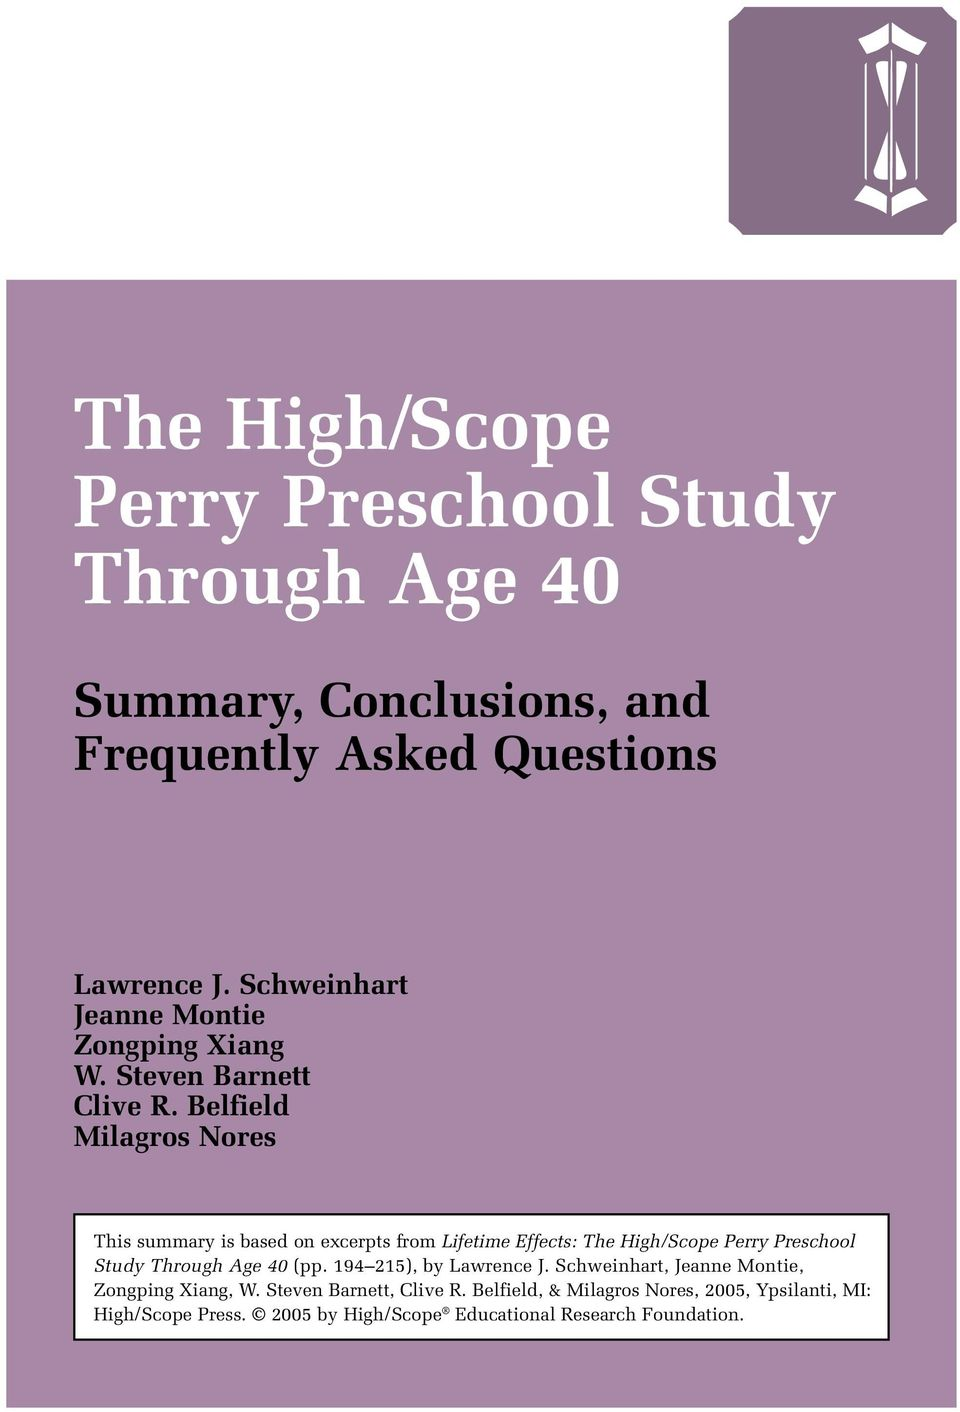 Belfield Milagros Nores This summary is based on excerpts from Lifetime Effects: The High/Scope Perry Preschool Study Through Age 40